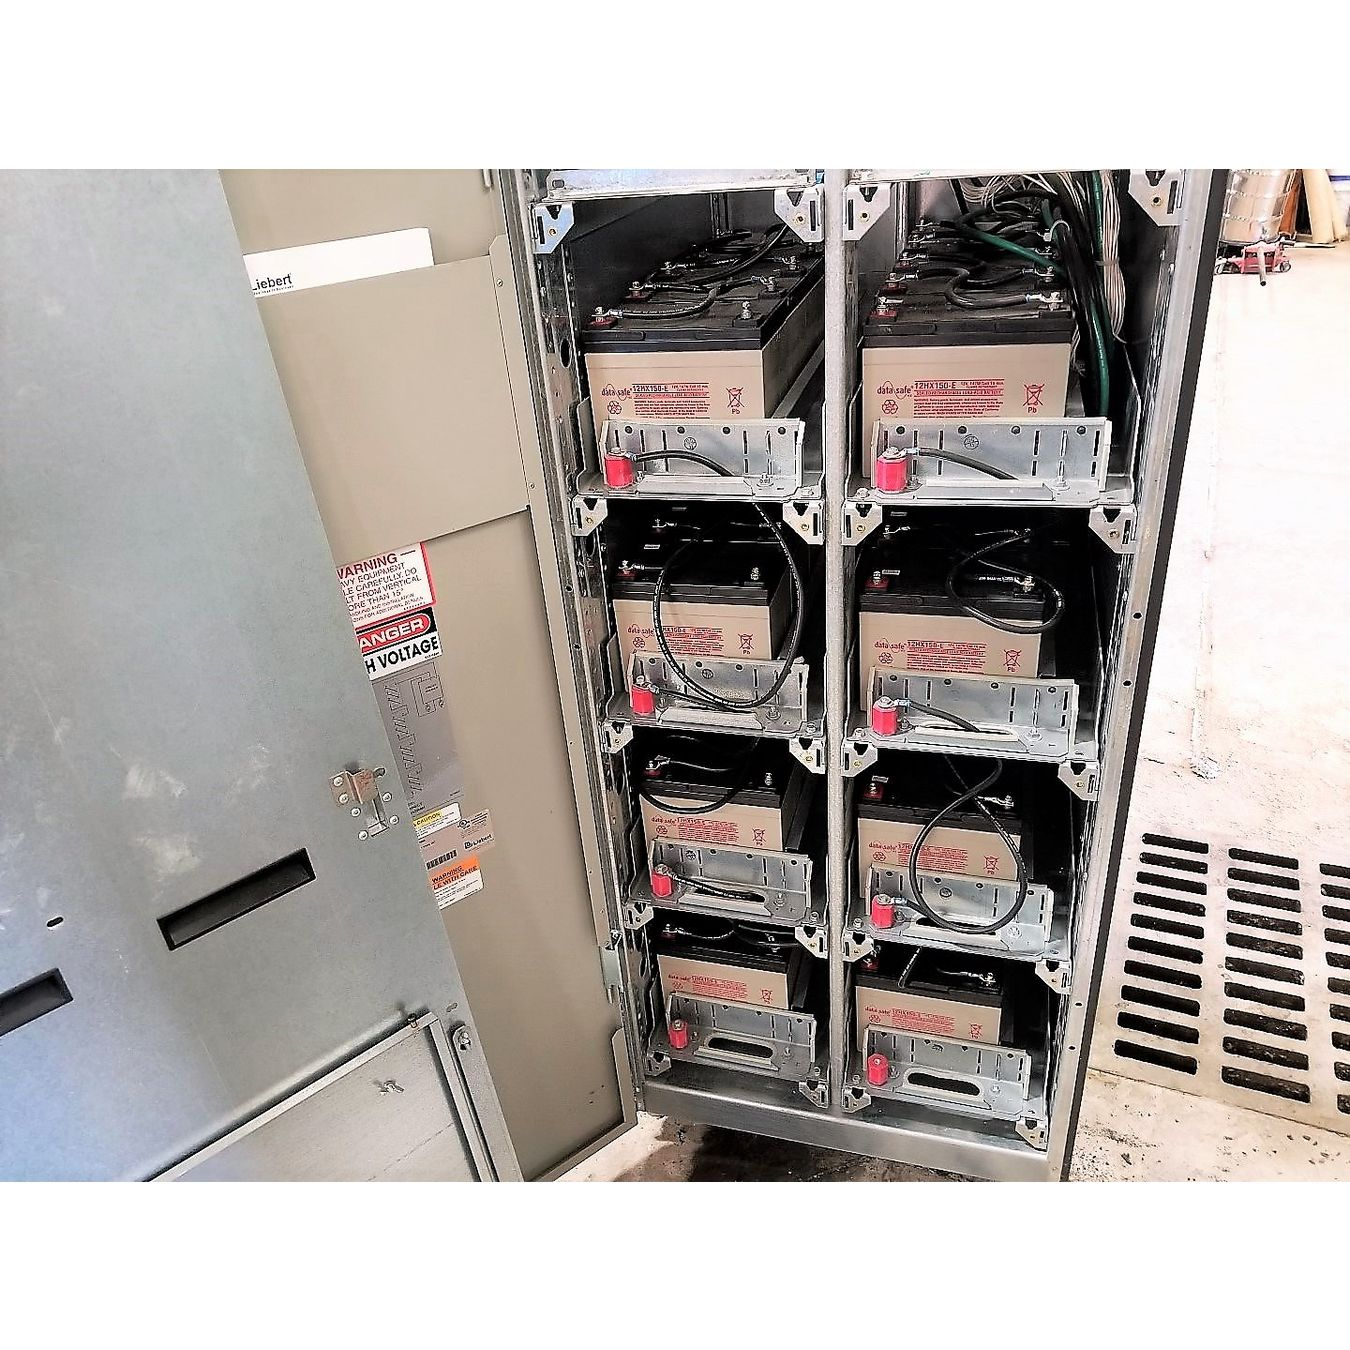 Used Liebert / Emerson NPower On-Line UPS System - 40 KVA, 208/120Y VAC  Output